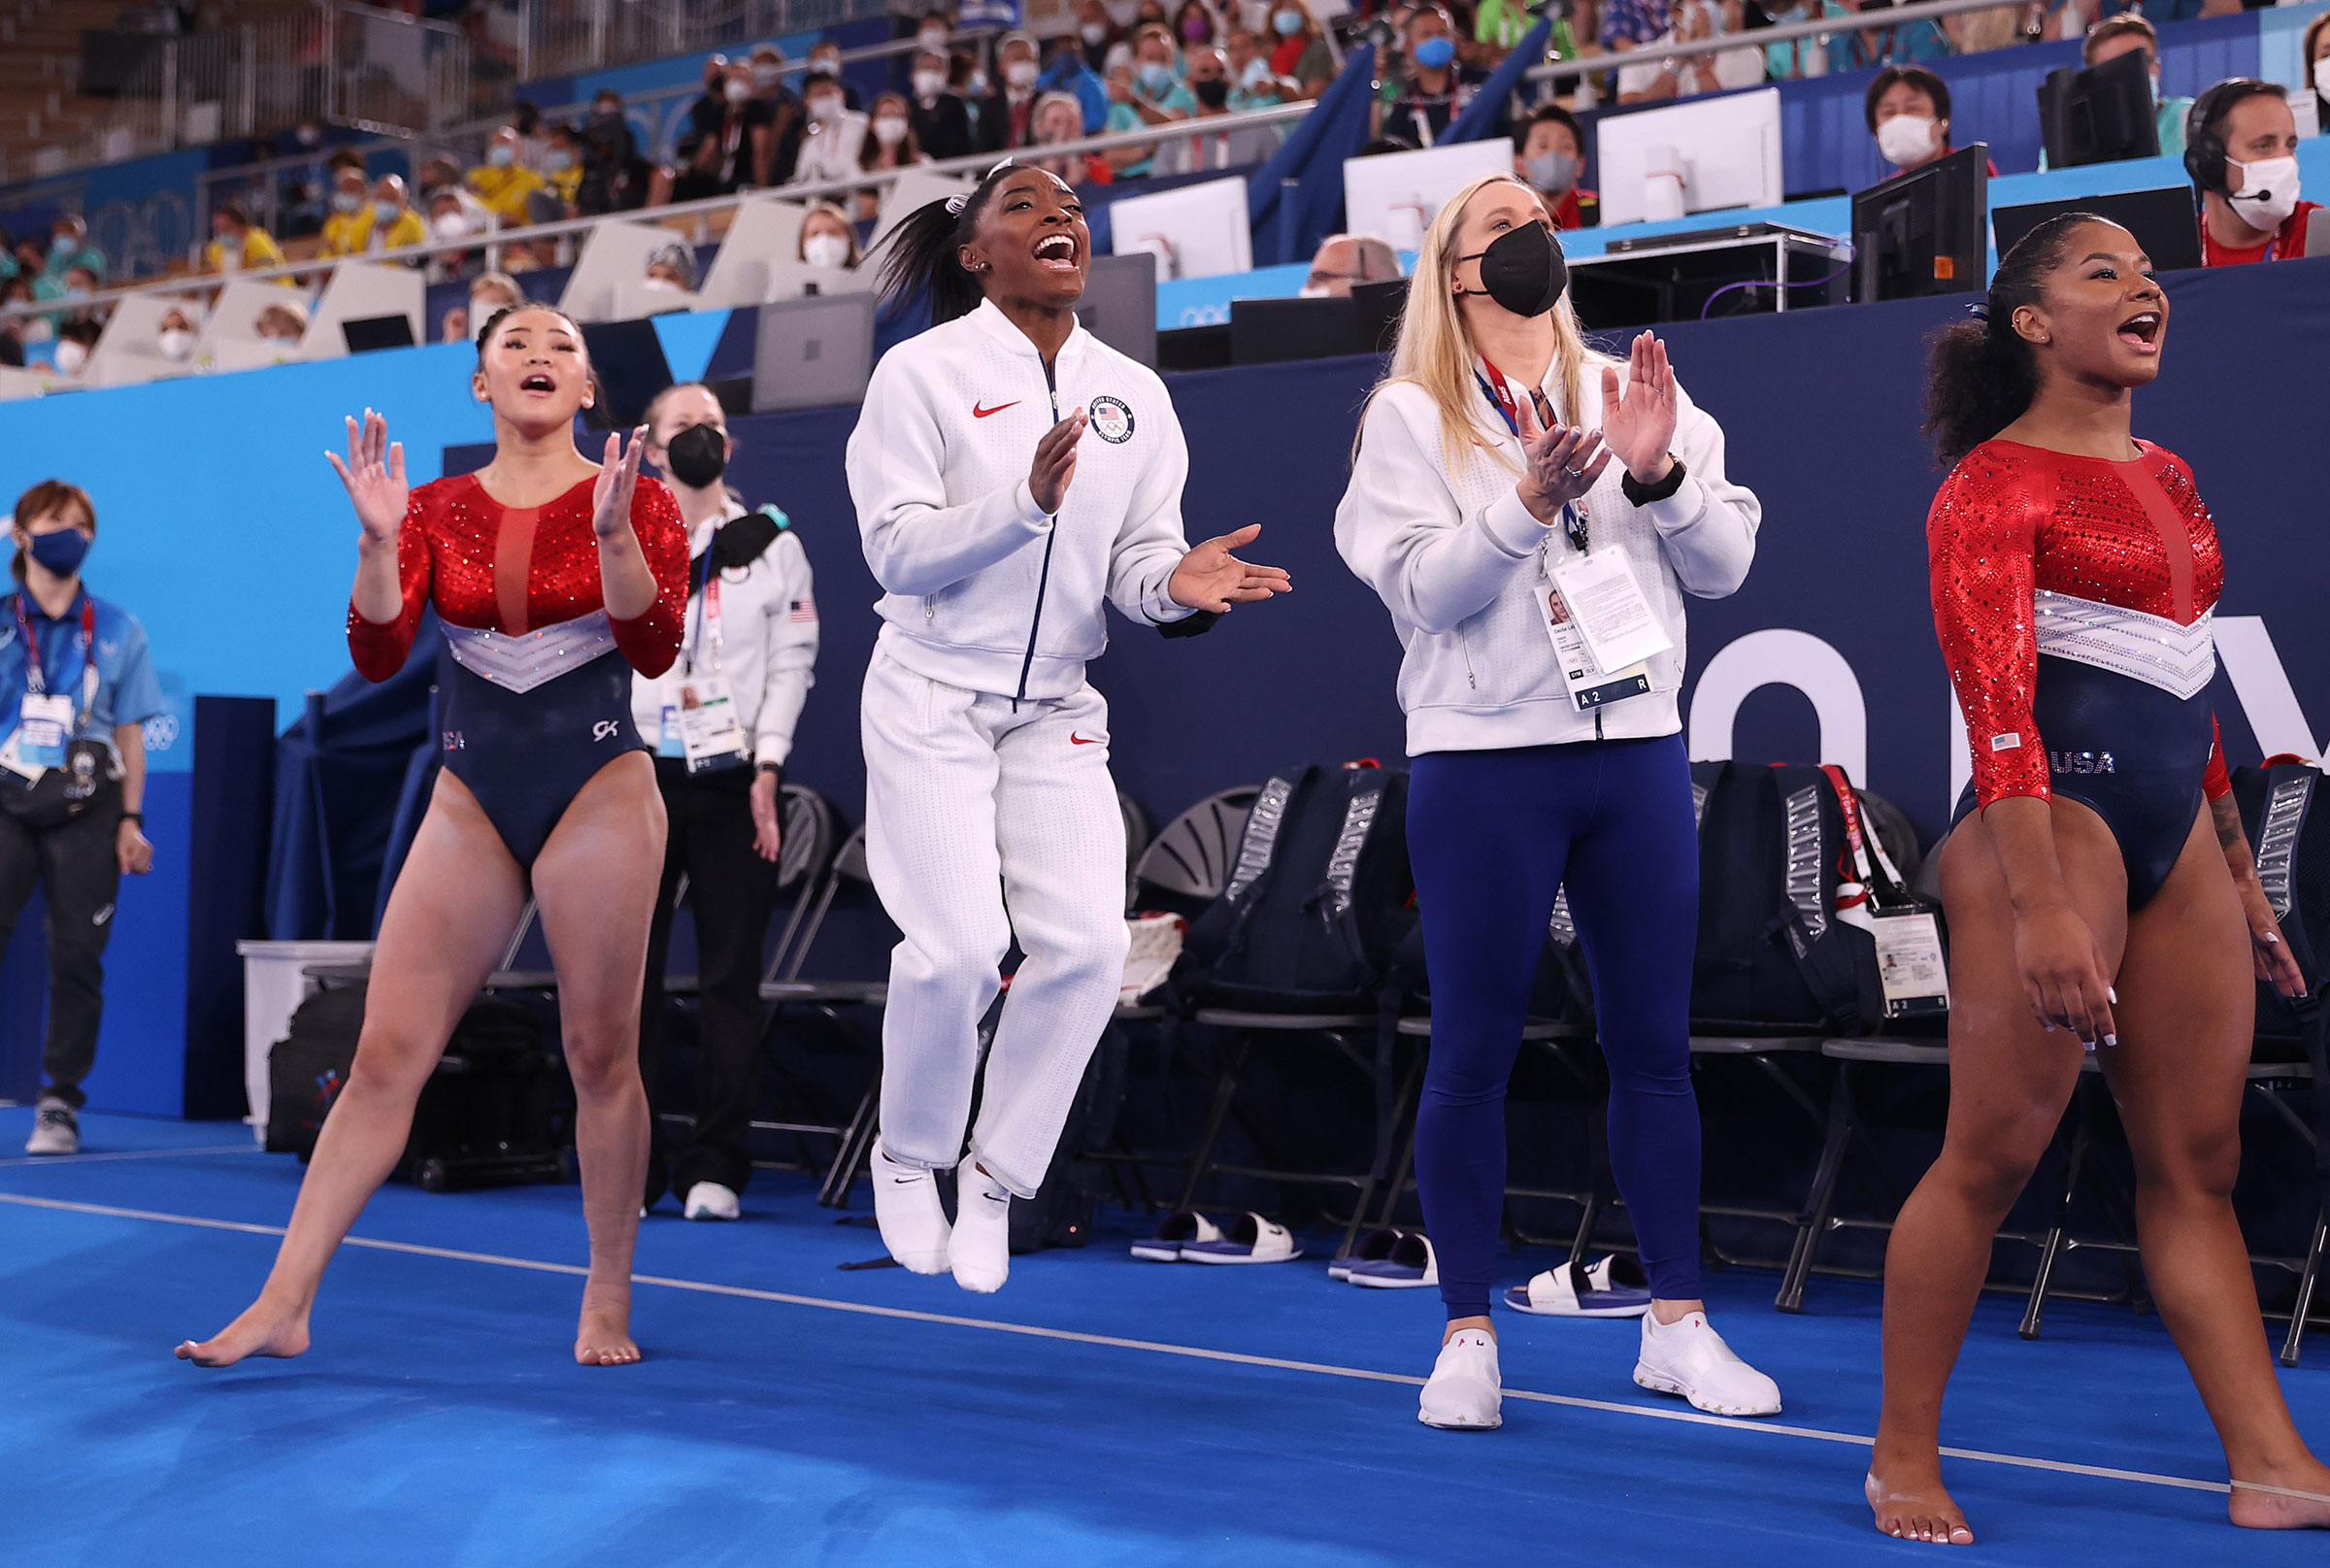 Sunisa Lee, Simone Biles, coach Cecile Landi and Jordan Chiles of Team United States cheer as Grace McCallum competes in floor routine during the Women's Team Final on July 27.